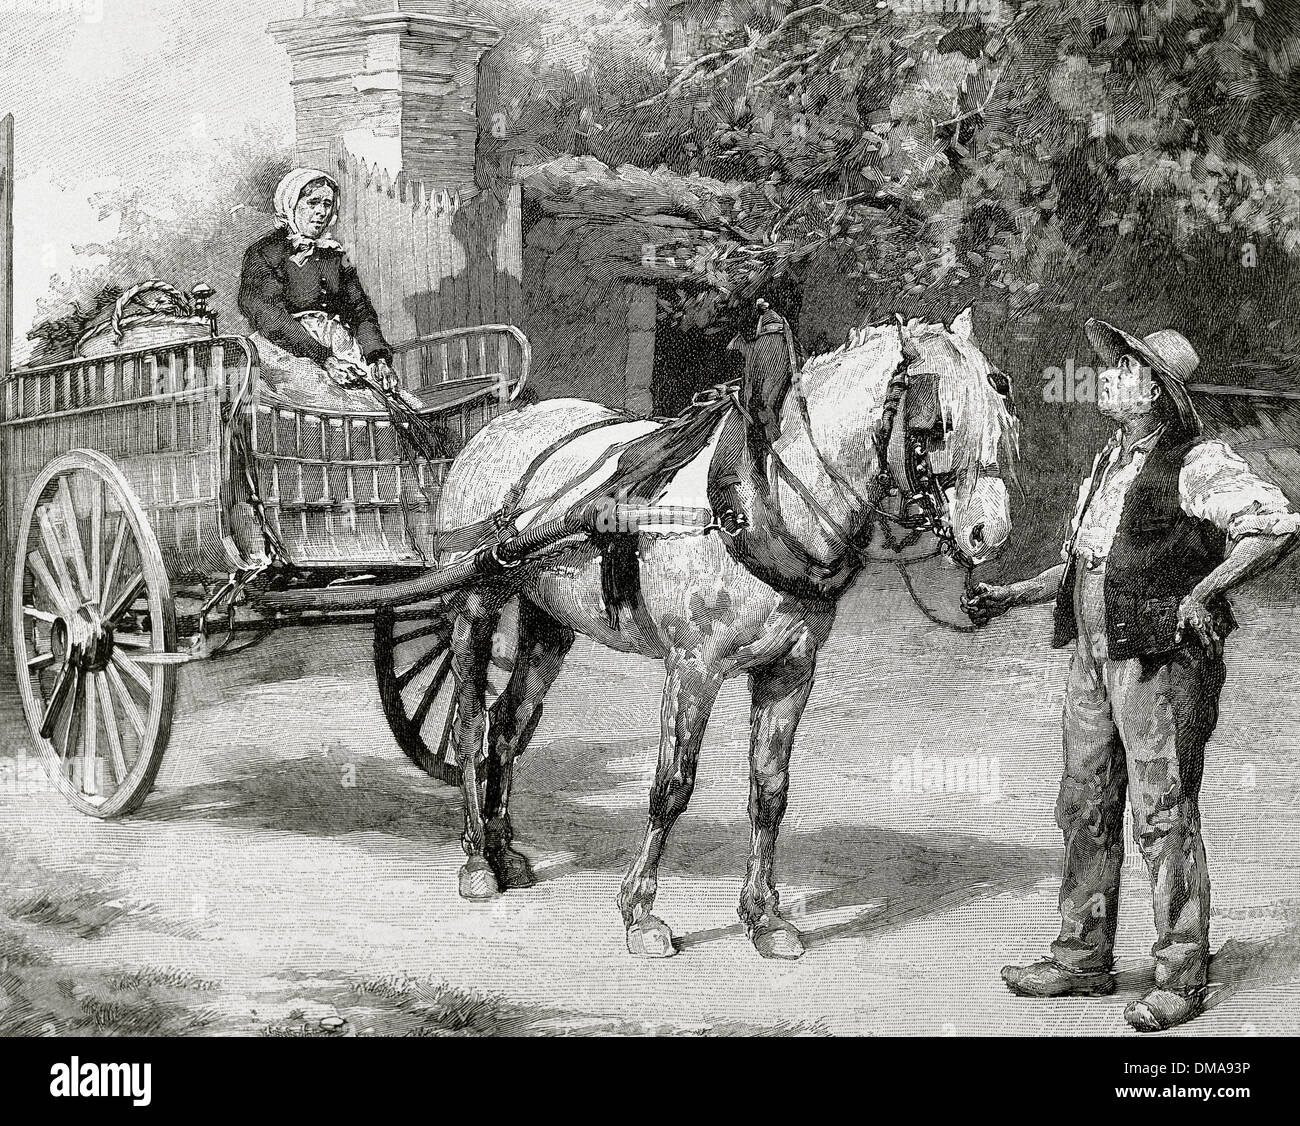 Peasant family with a chariot. Engraving by Huyot, 1880. - Stock Image